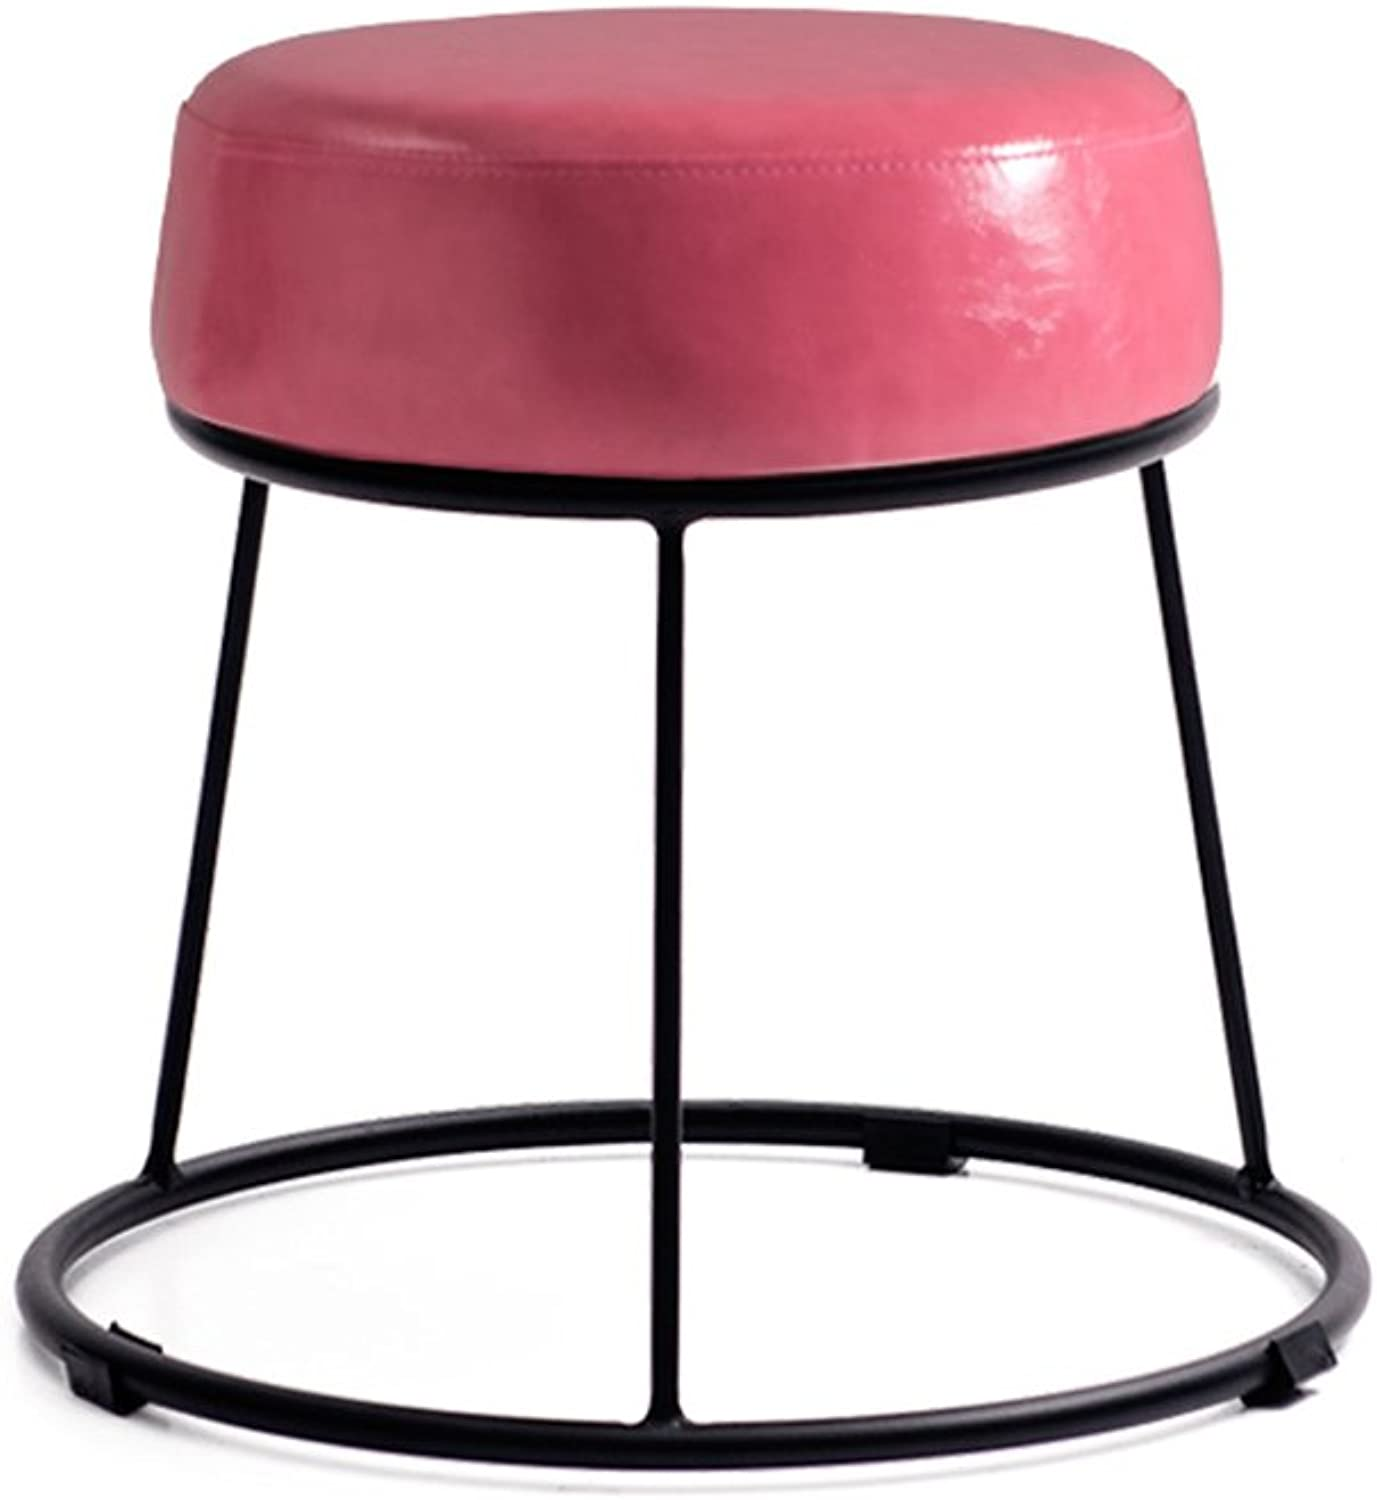 Bar Stool Living Room Stool Table Stool Iron Stool Black Stool Soft Stool Foot Stool Bed Stool Stool   Lazy Stool Fashion Bench Creative shoes Stool   38.5  36.5cm (color   B)